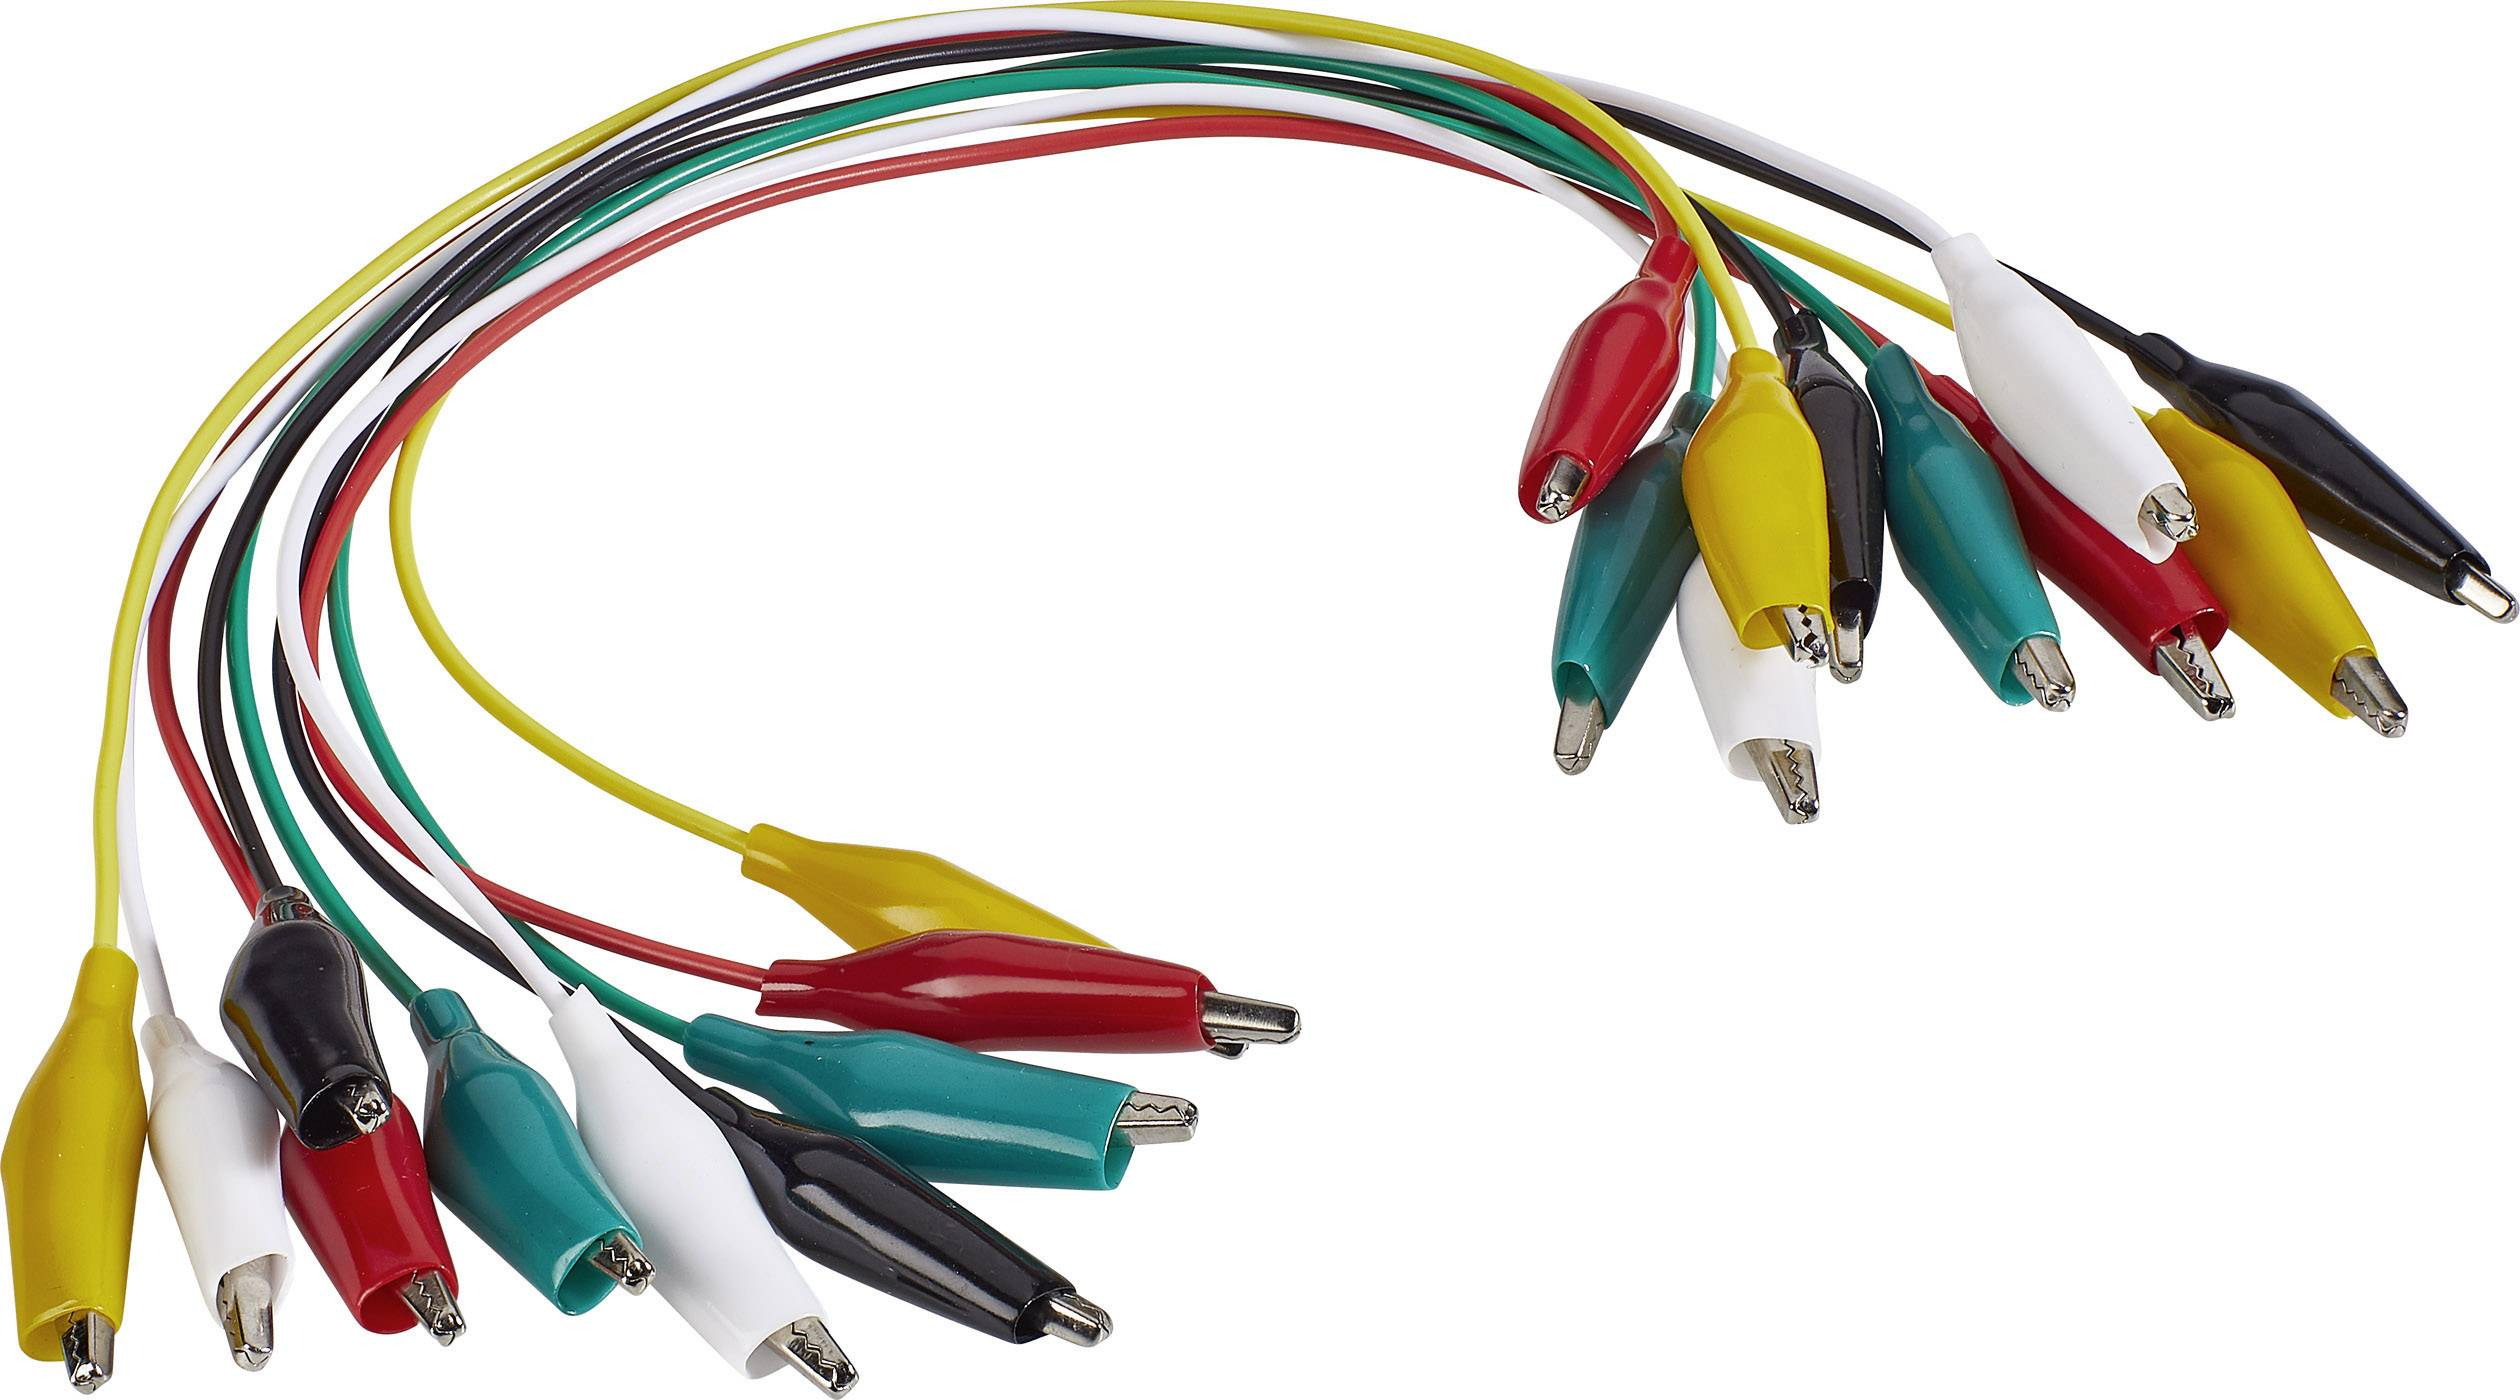 Red Black Yellow Green Wires Uk Wire Center Wiring A Plug Test Lead Kit Terminals 0 28 M Rh Conrad Electronic Co Cloth Spark